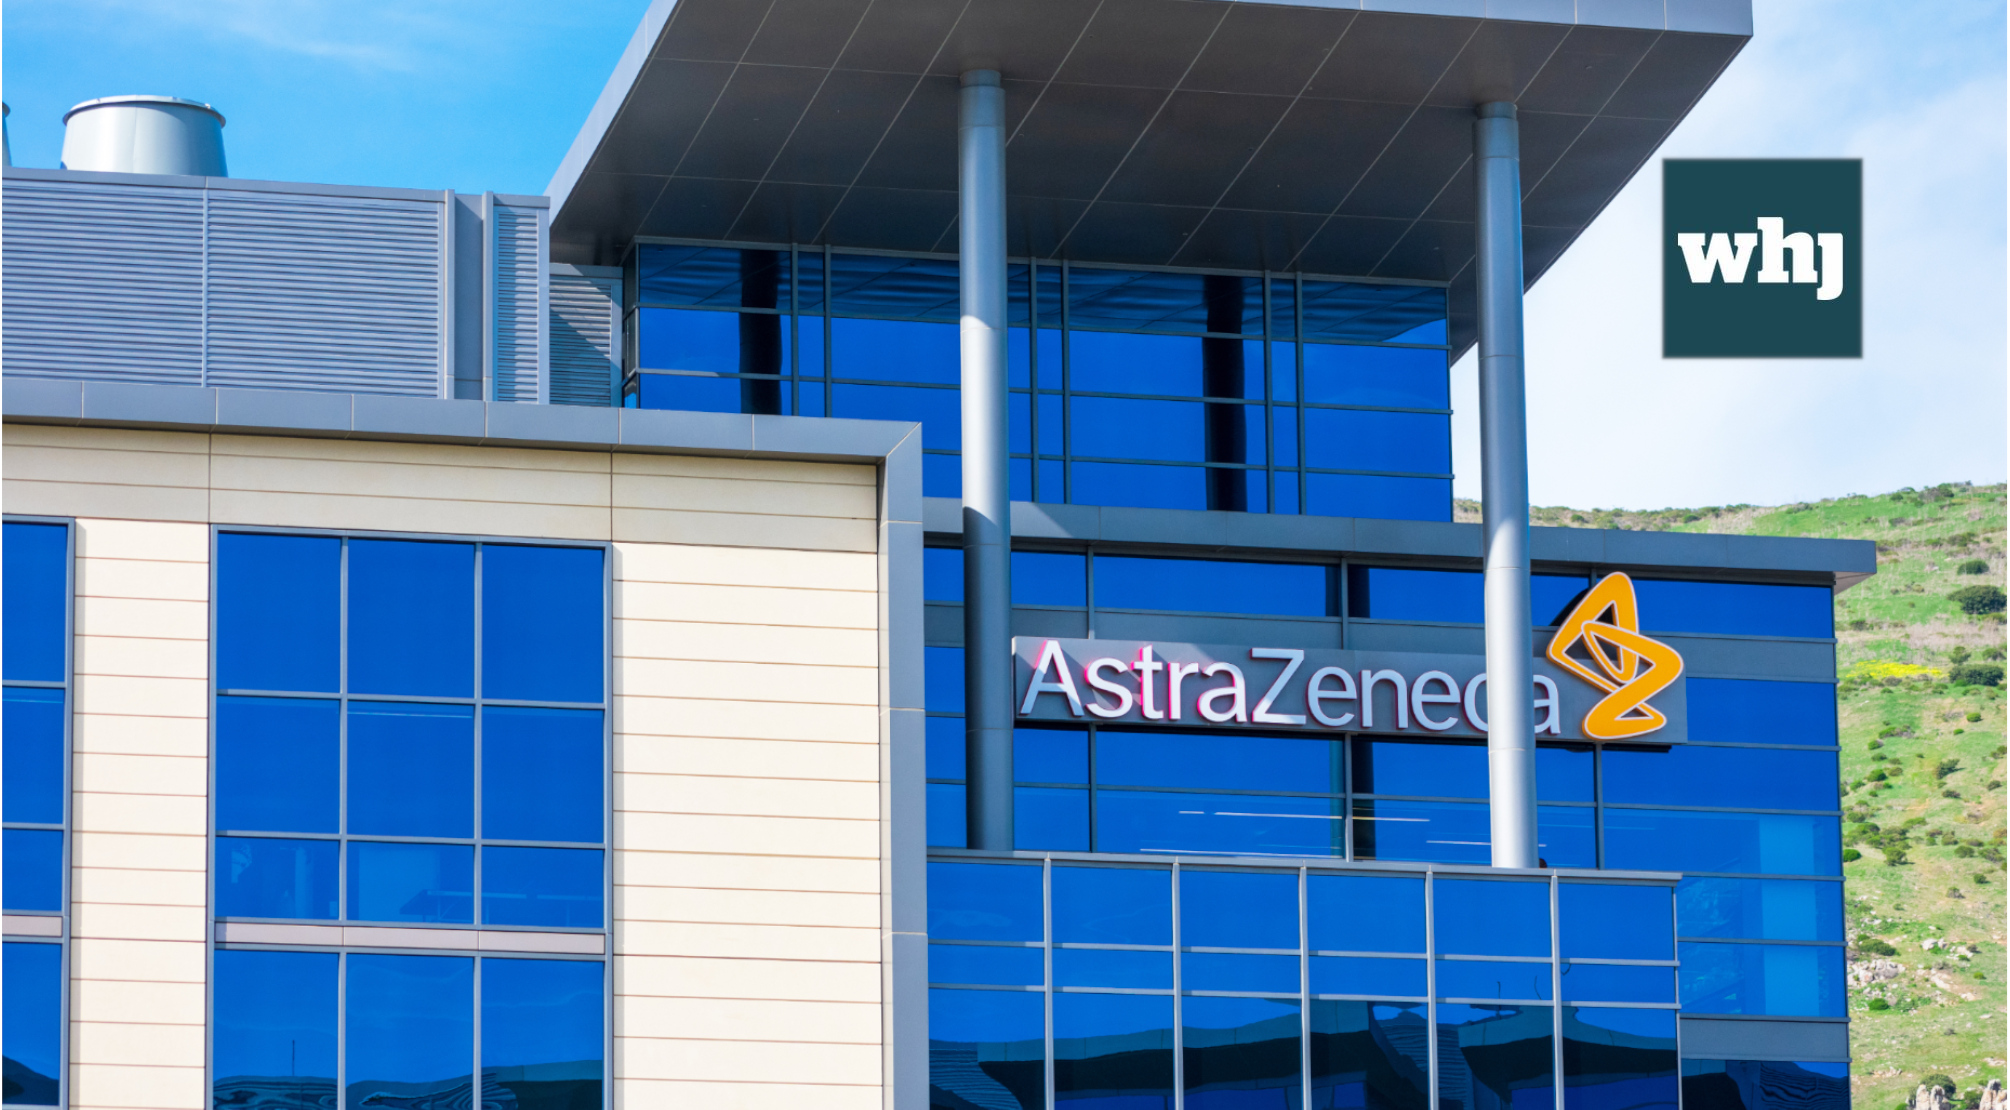 Pharmaceutical giant AstraZeneca begins global clinical trial for Covid-19 treatment